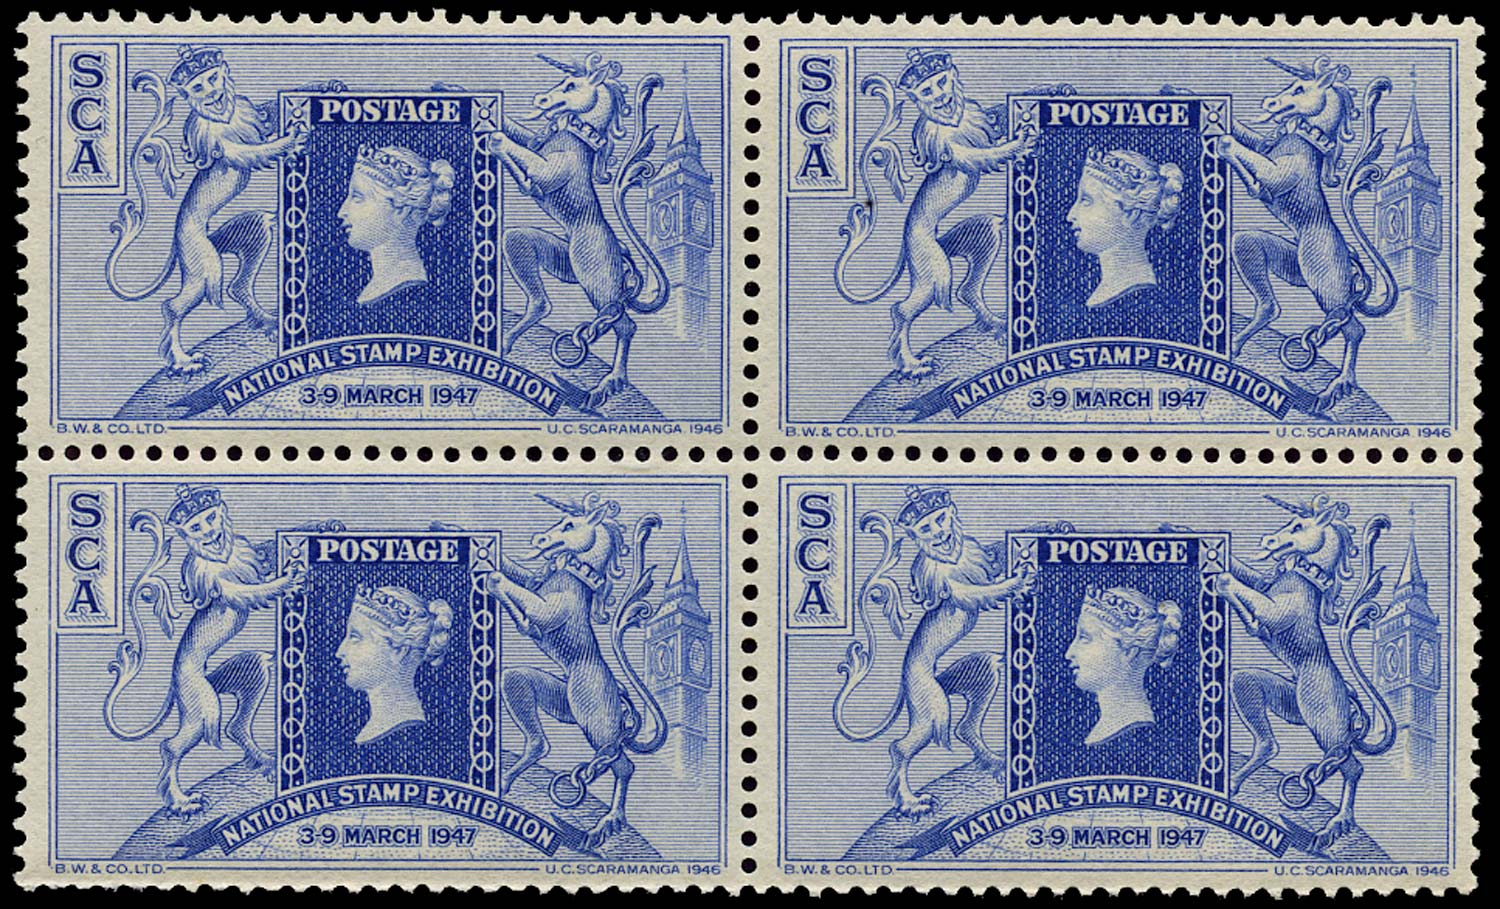 GB 1947 Cinderella - 1947 National Stamp Exhibition souvenir label